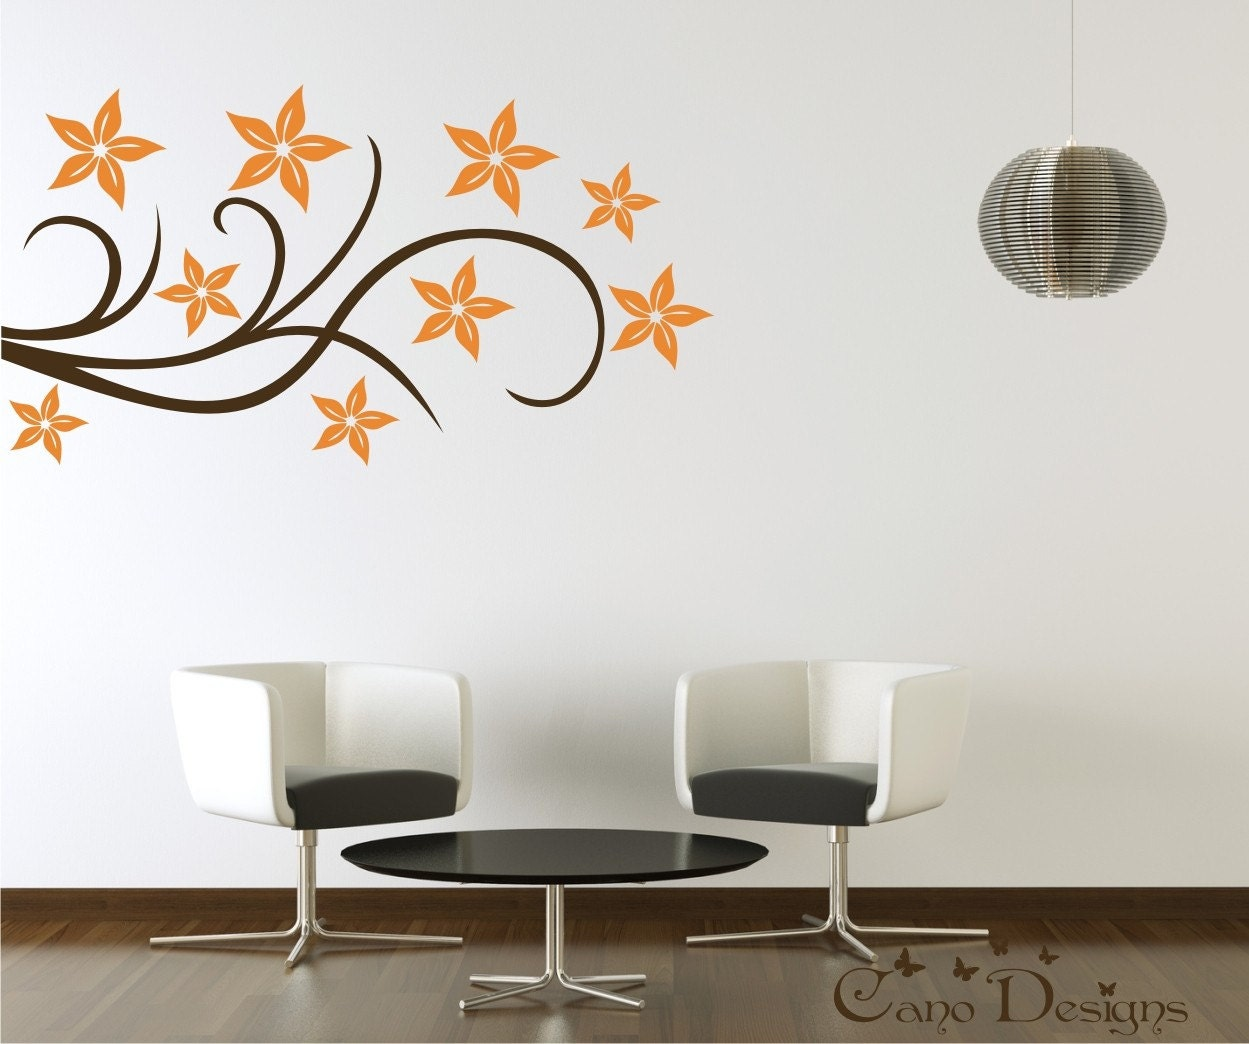 Bold Design Wall Decals : Floral design vinyl decal wall decals stickers removable